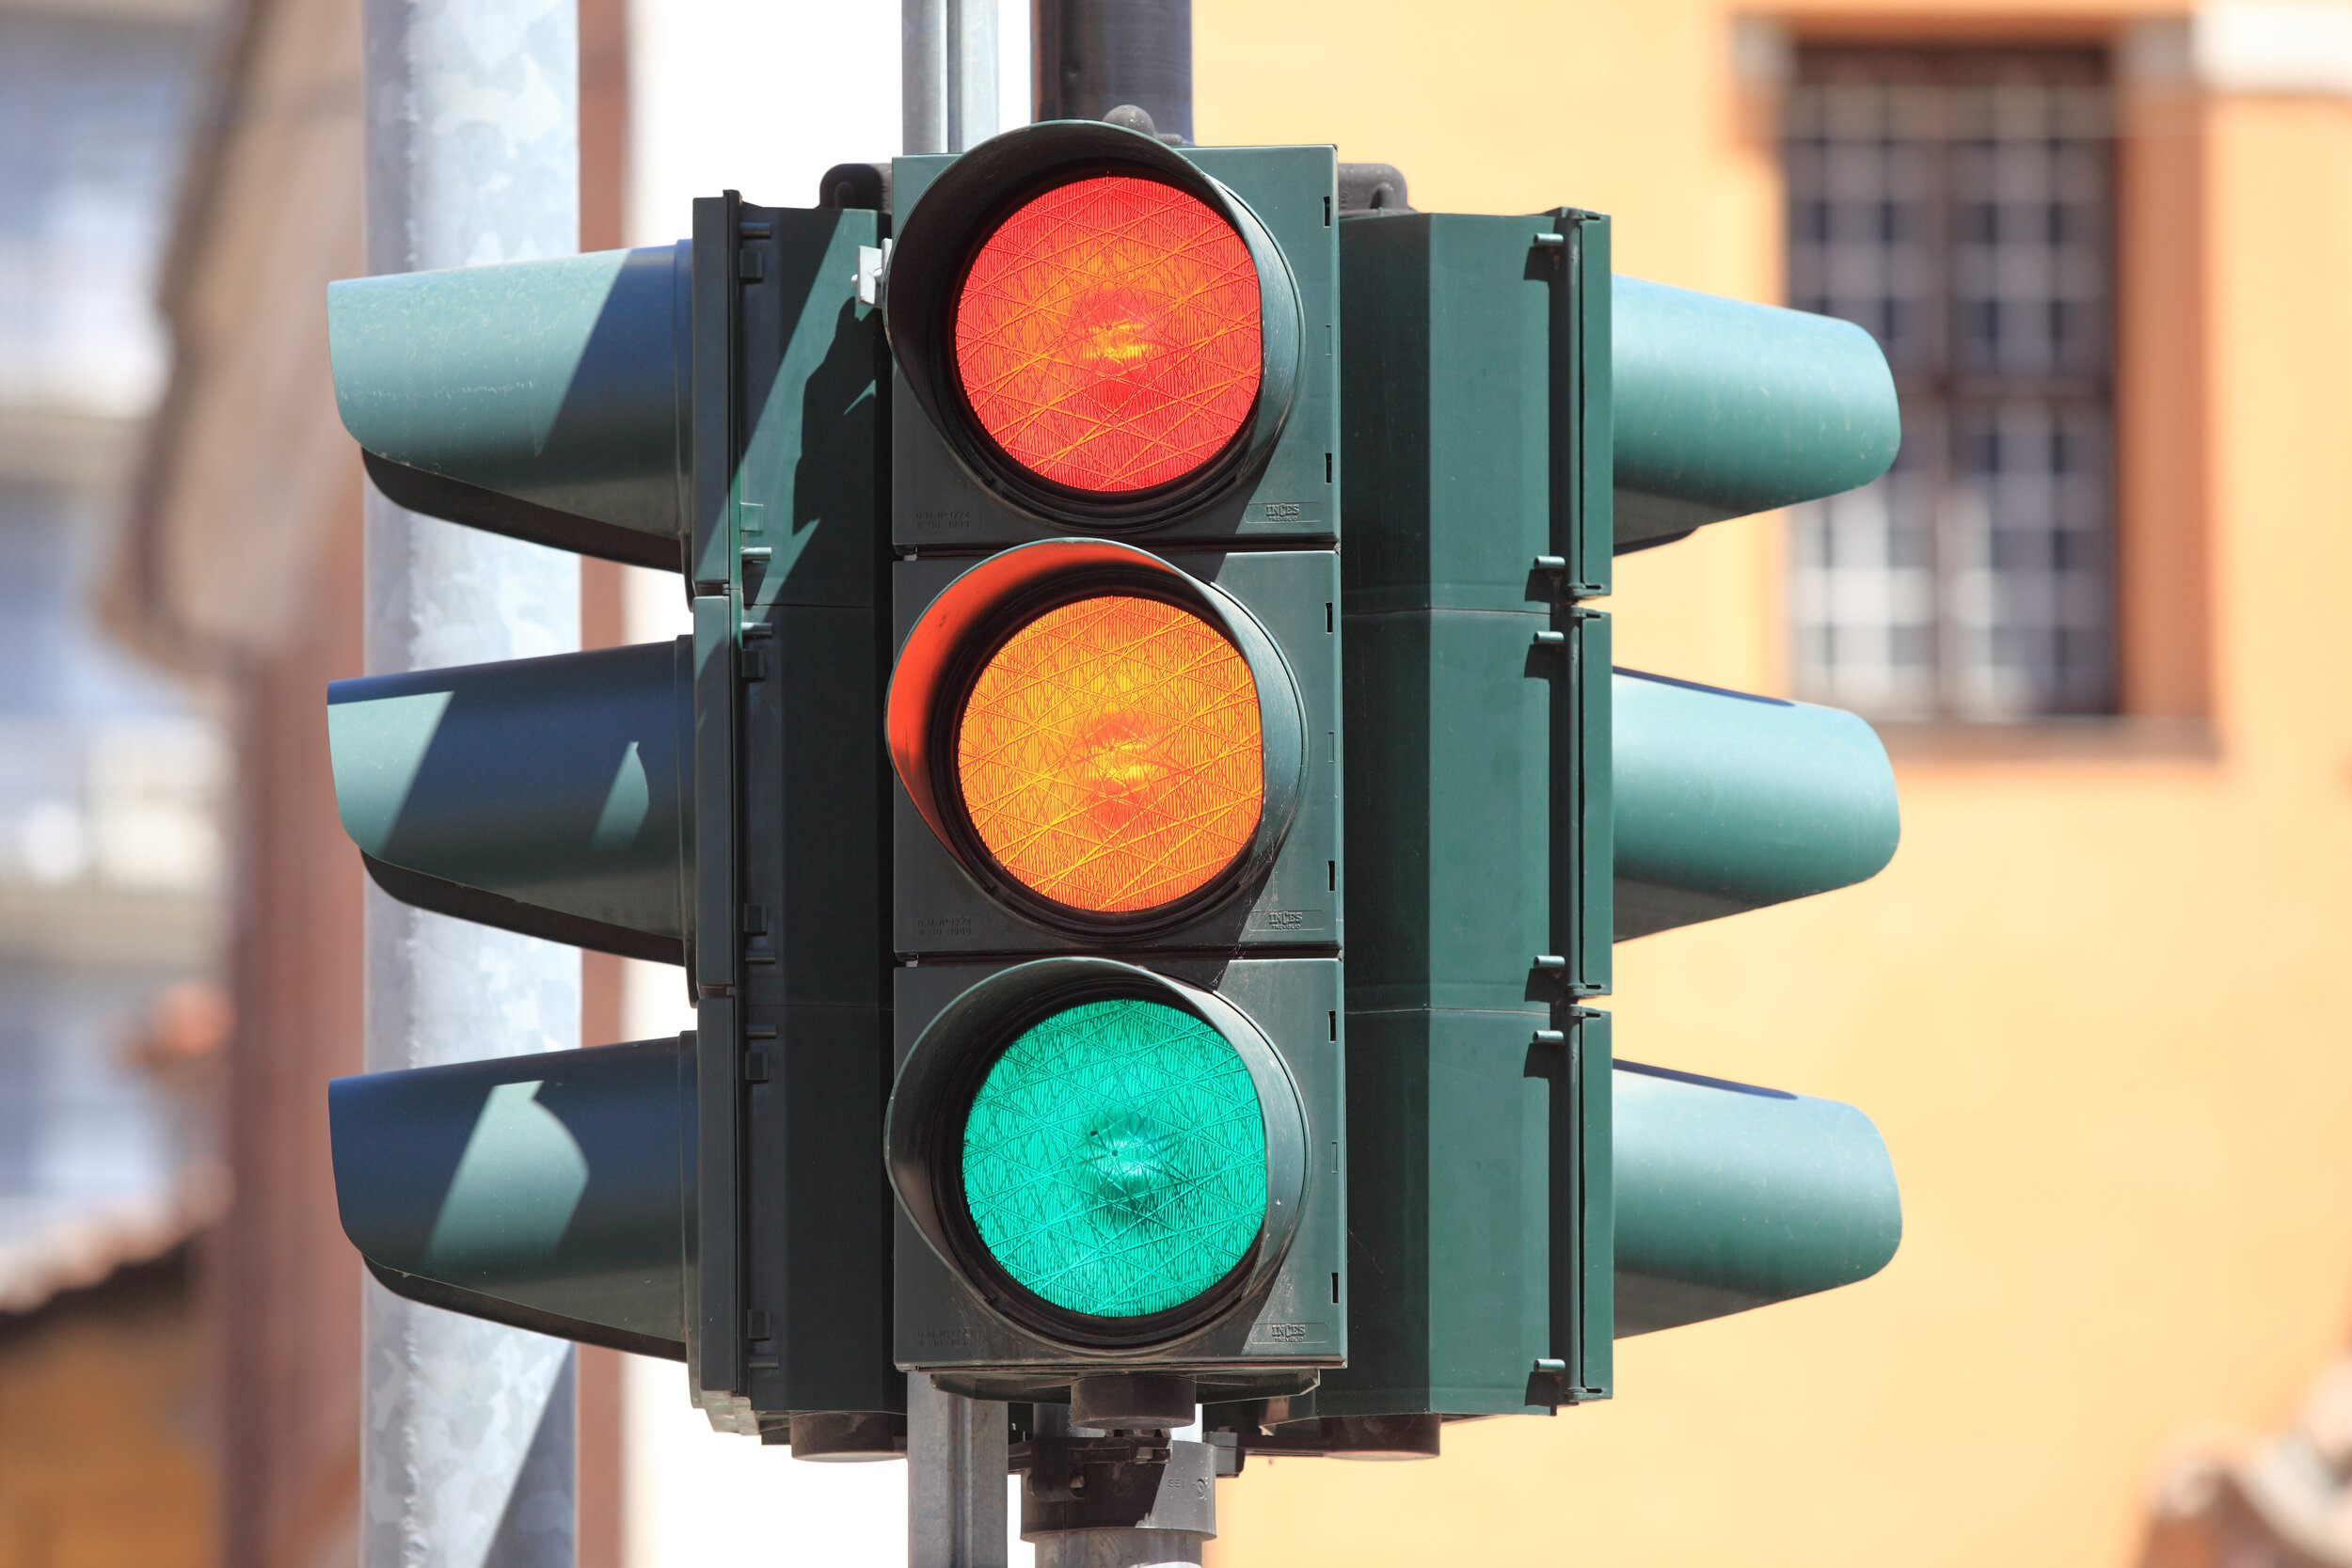 Reduce Recurring Costs - Installing a Mesh 4G system for traffic light management will drastically reduce yearly revenue costs by connecting multiple traffic lights to a single back-haul using on-street wireless.